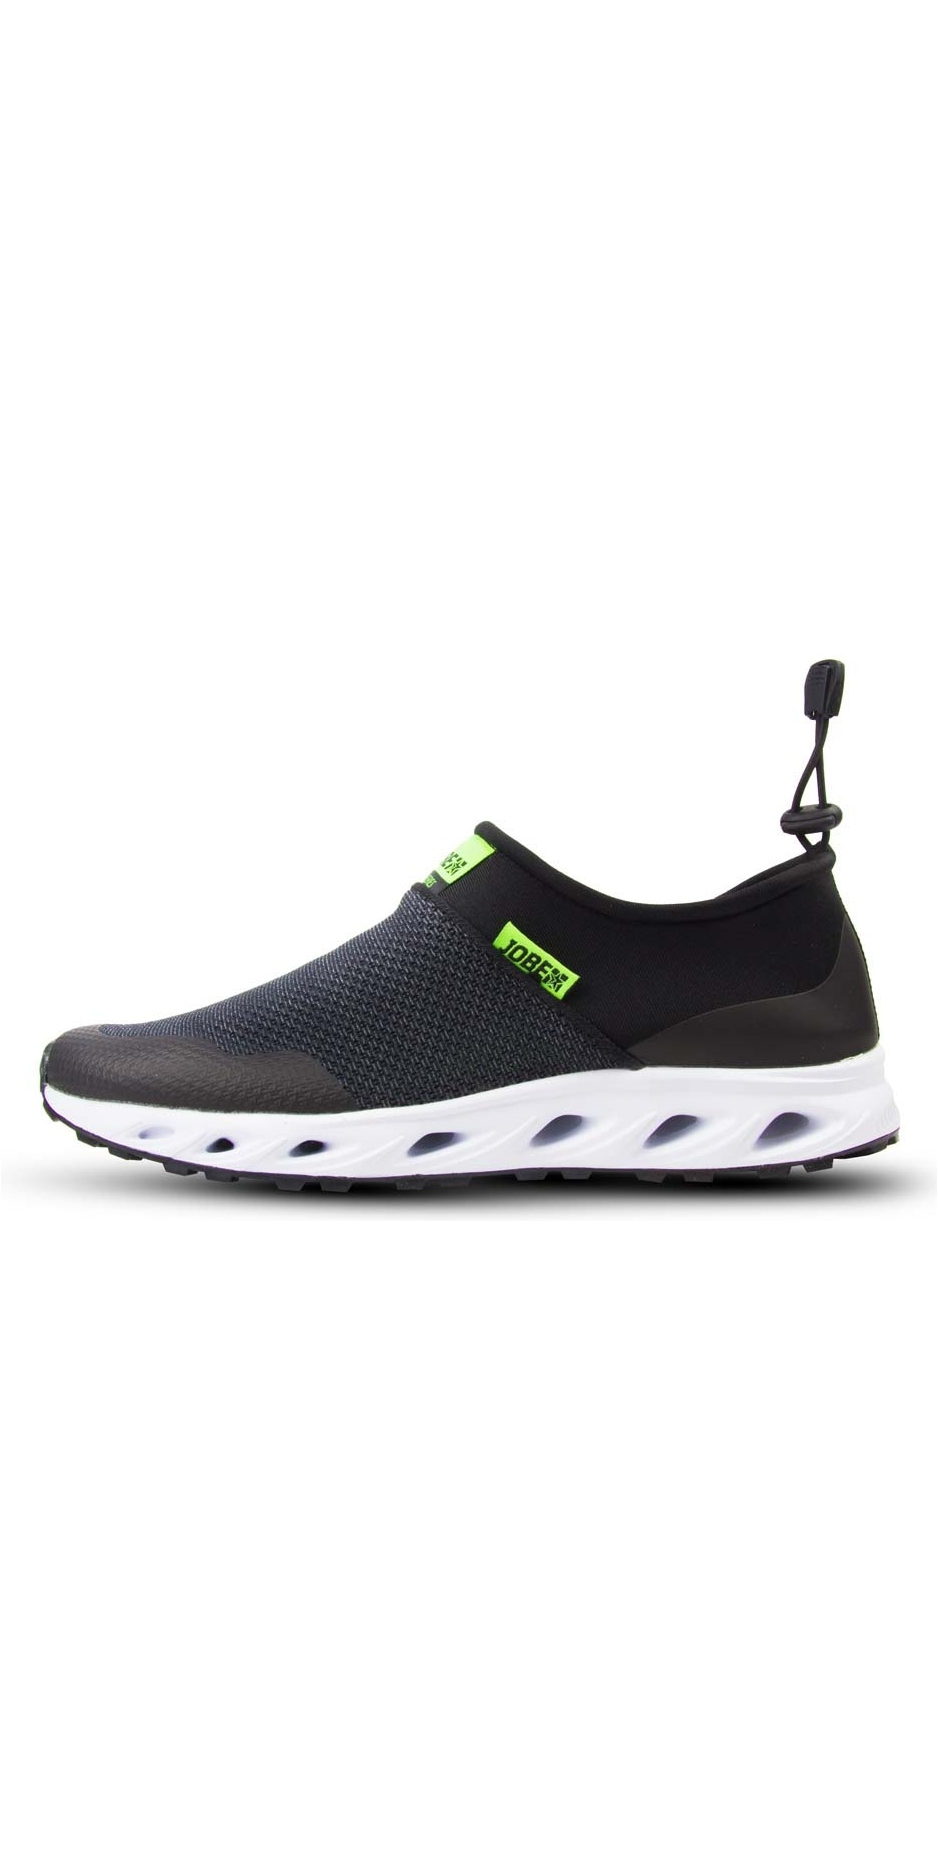 7a95865f8834 2019 Jobe Discover Slip-on Water Trainers Black 594618006 - Sup Shoes -  Footwear - by